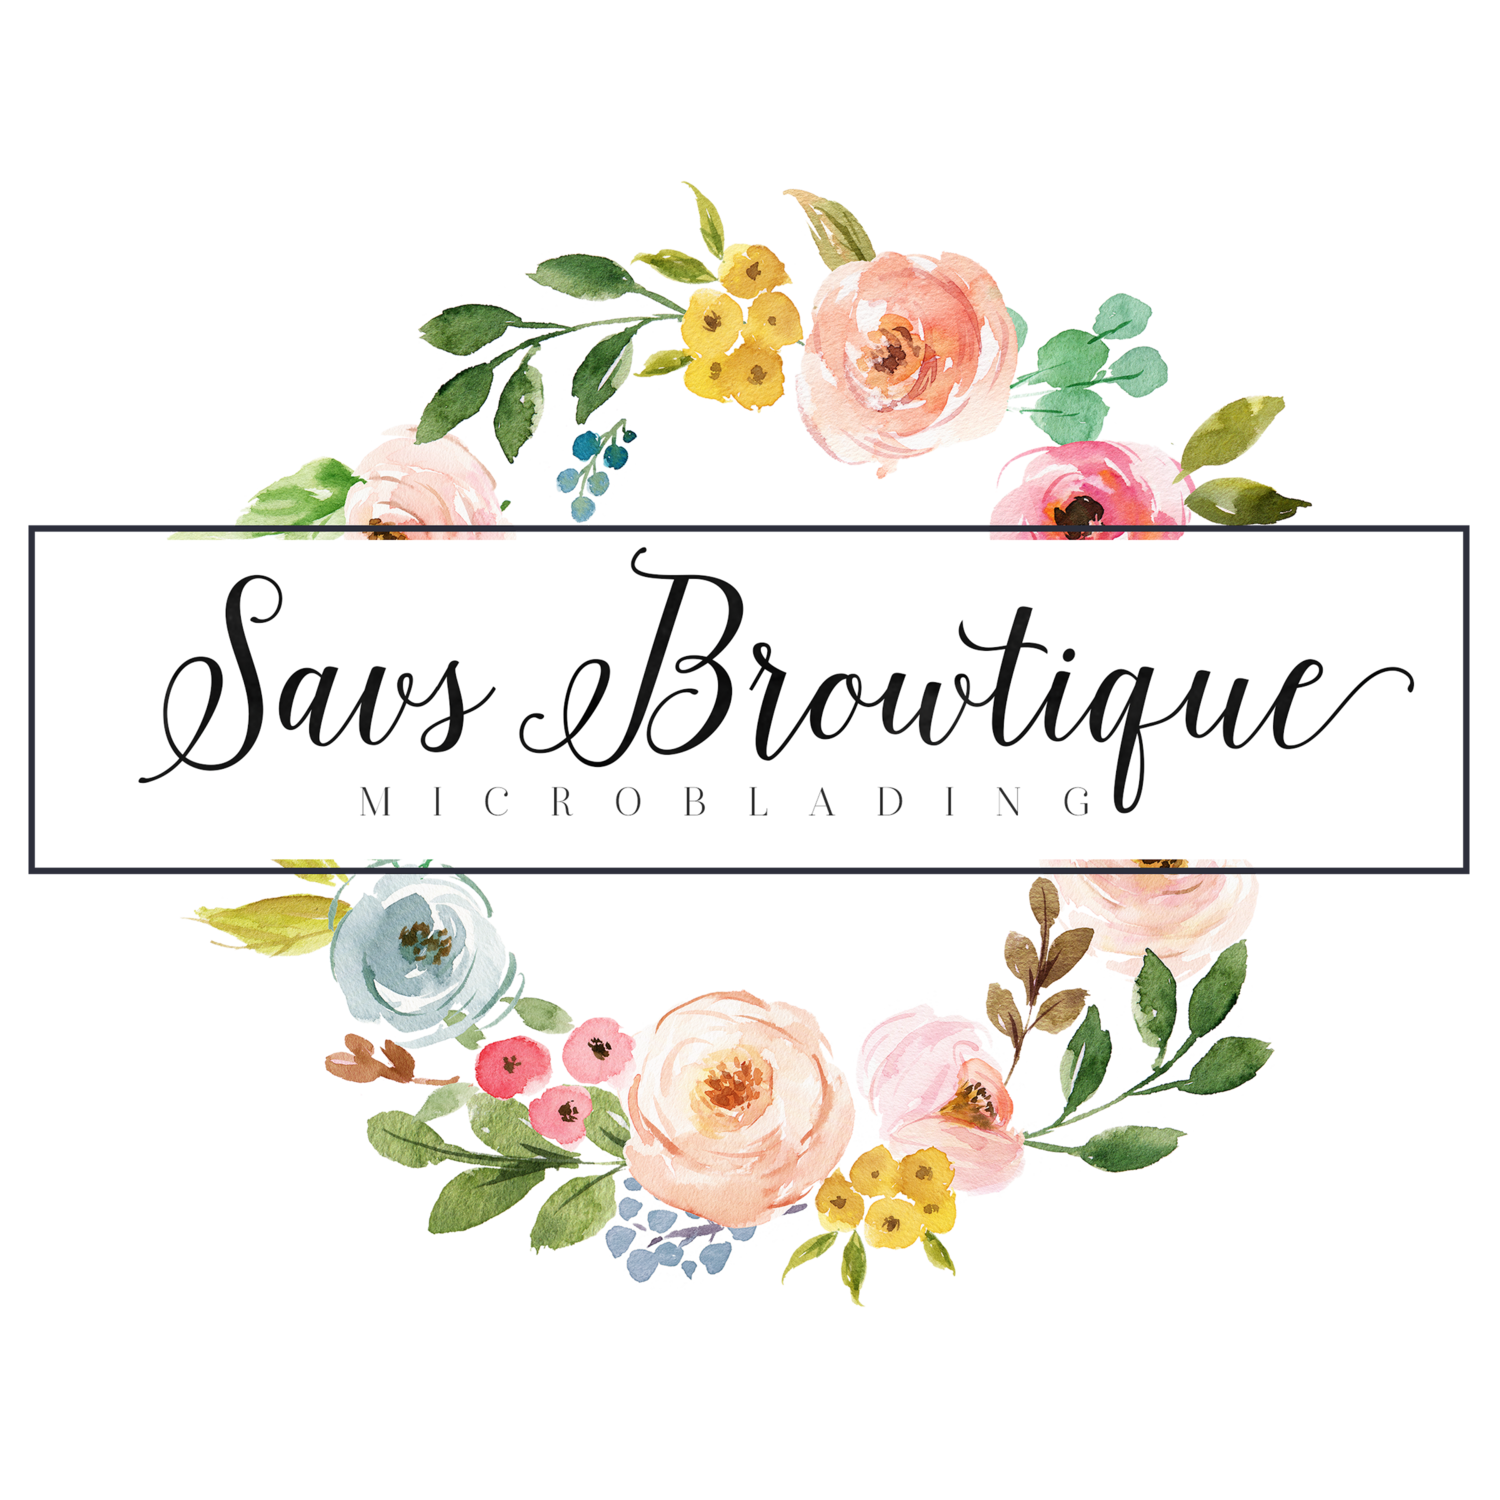 Savs Browtique